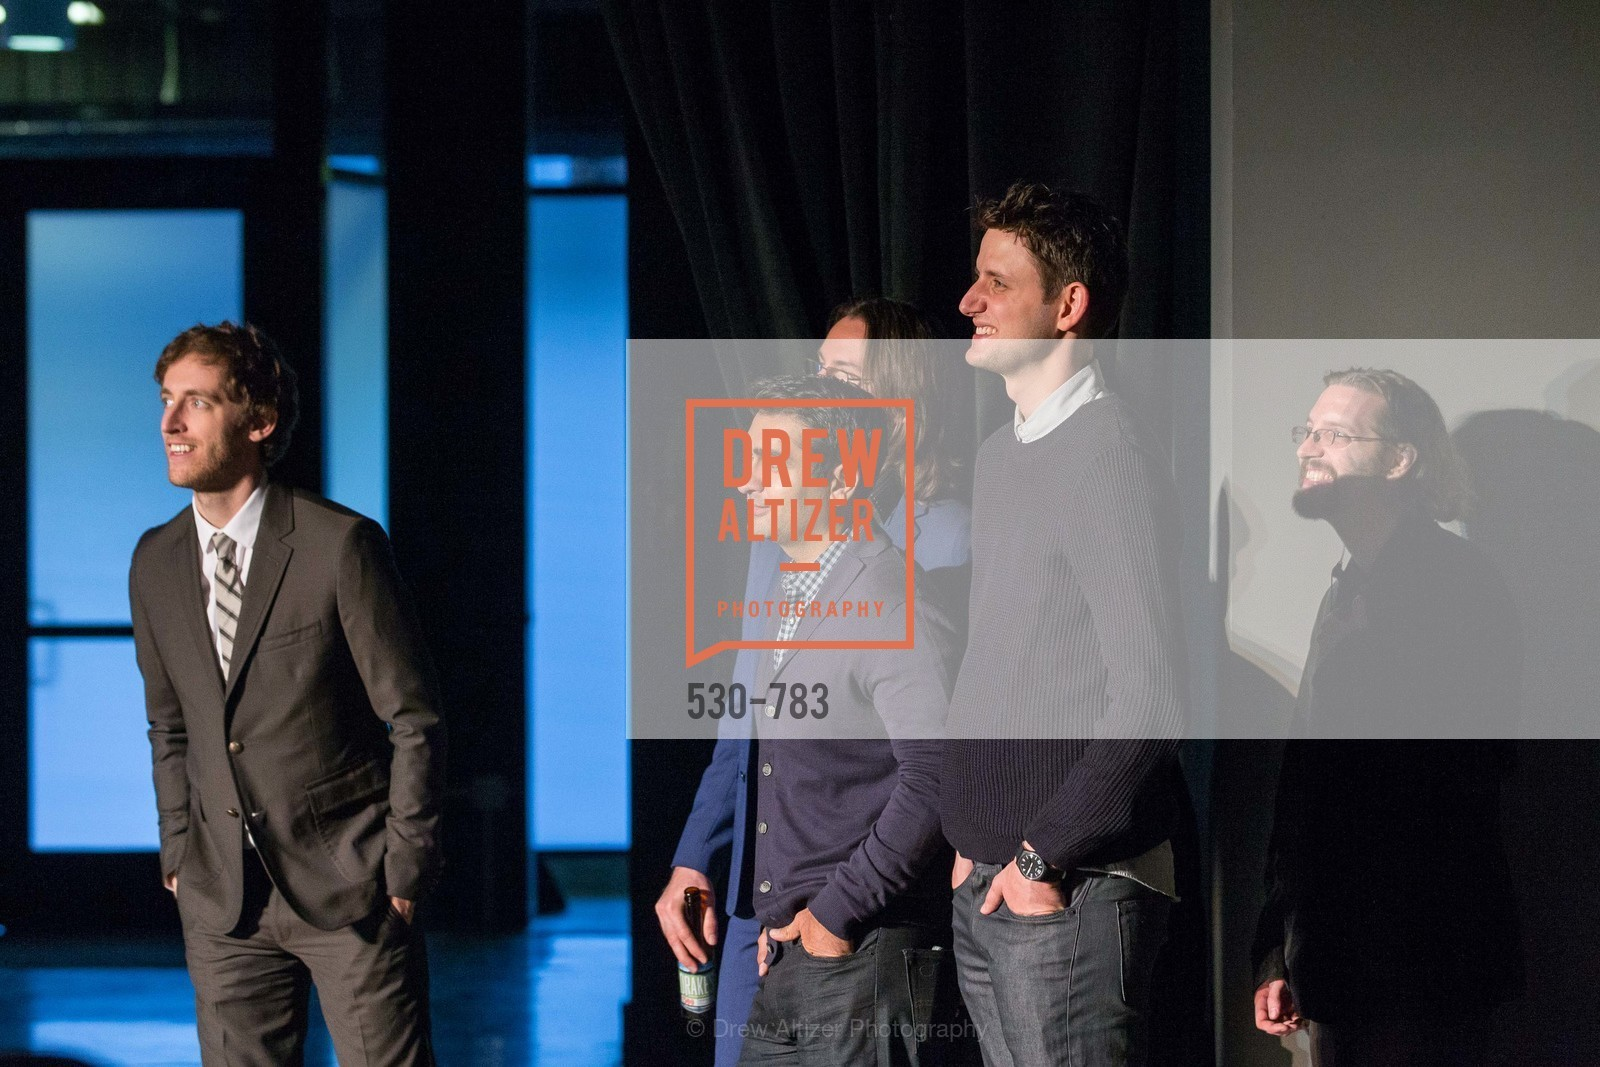 Thomas Middleditch, Kumail Nanjiani, Zach Woods, HBO'S SILICON VALLEY San Francisco Screening, US, April 9th, 2015,Drew Altizer, Drew Altizer Photography, full-service agency, private events, San Francisco photographer, photographer california